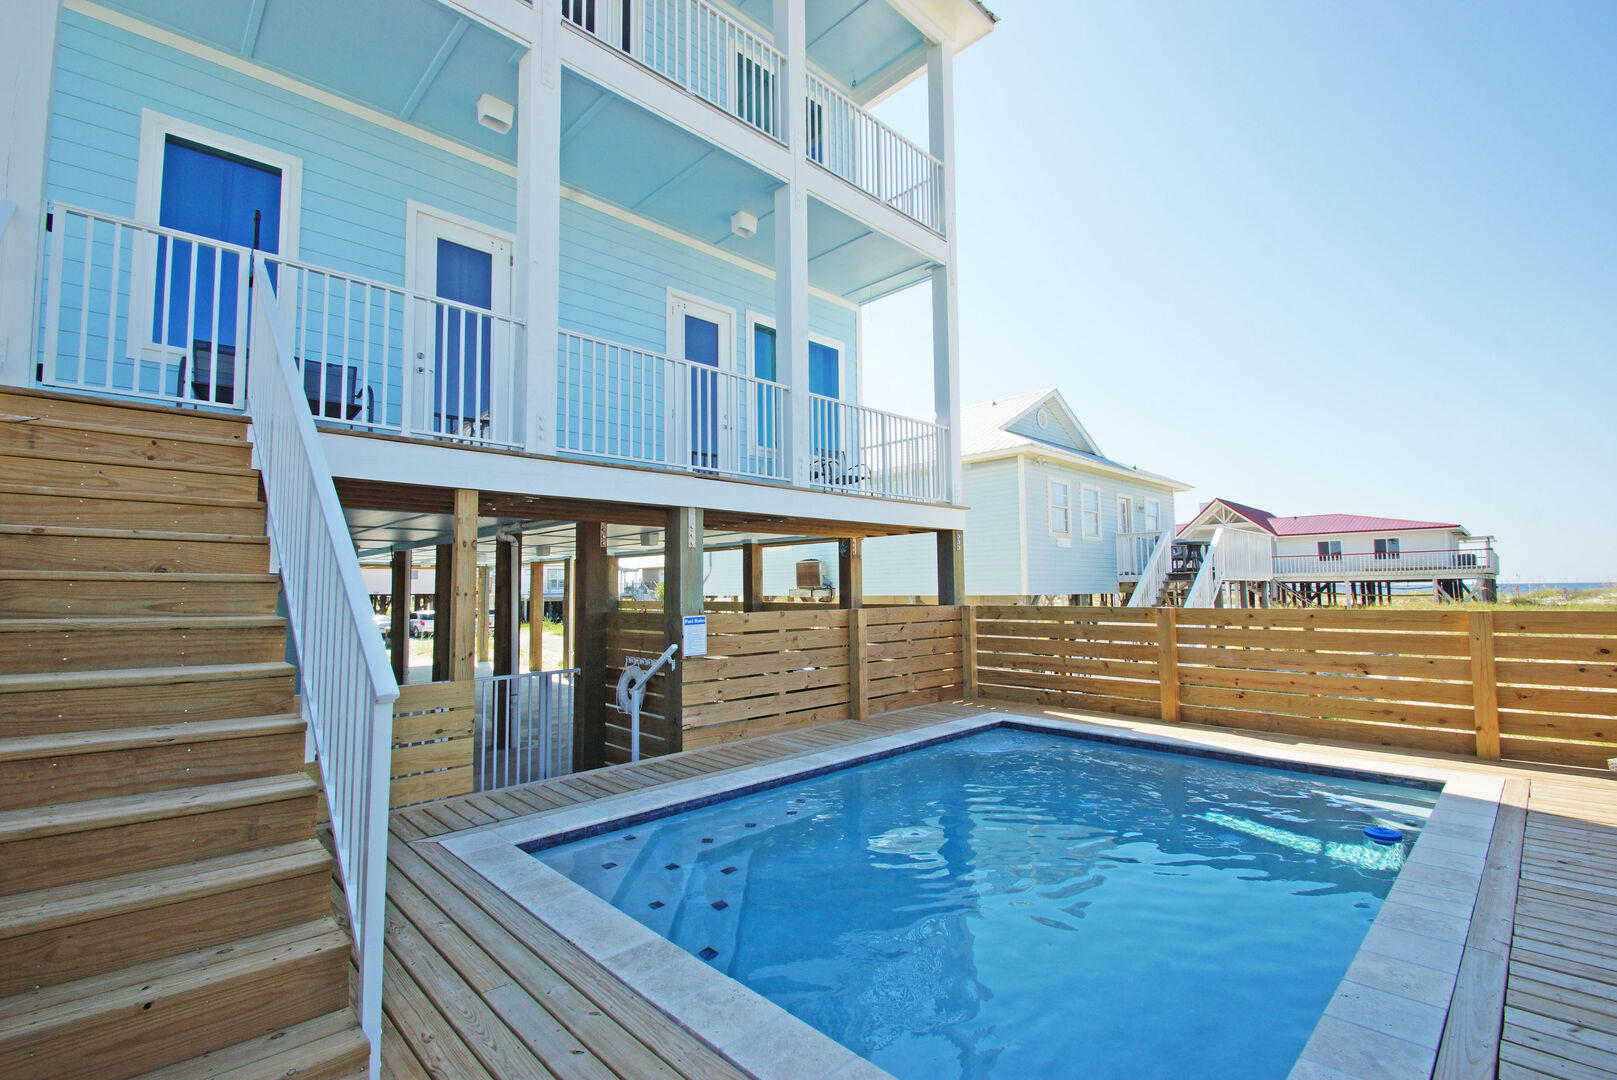 Easy access to the pool of this Vacation Home in Gulf Shores.